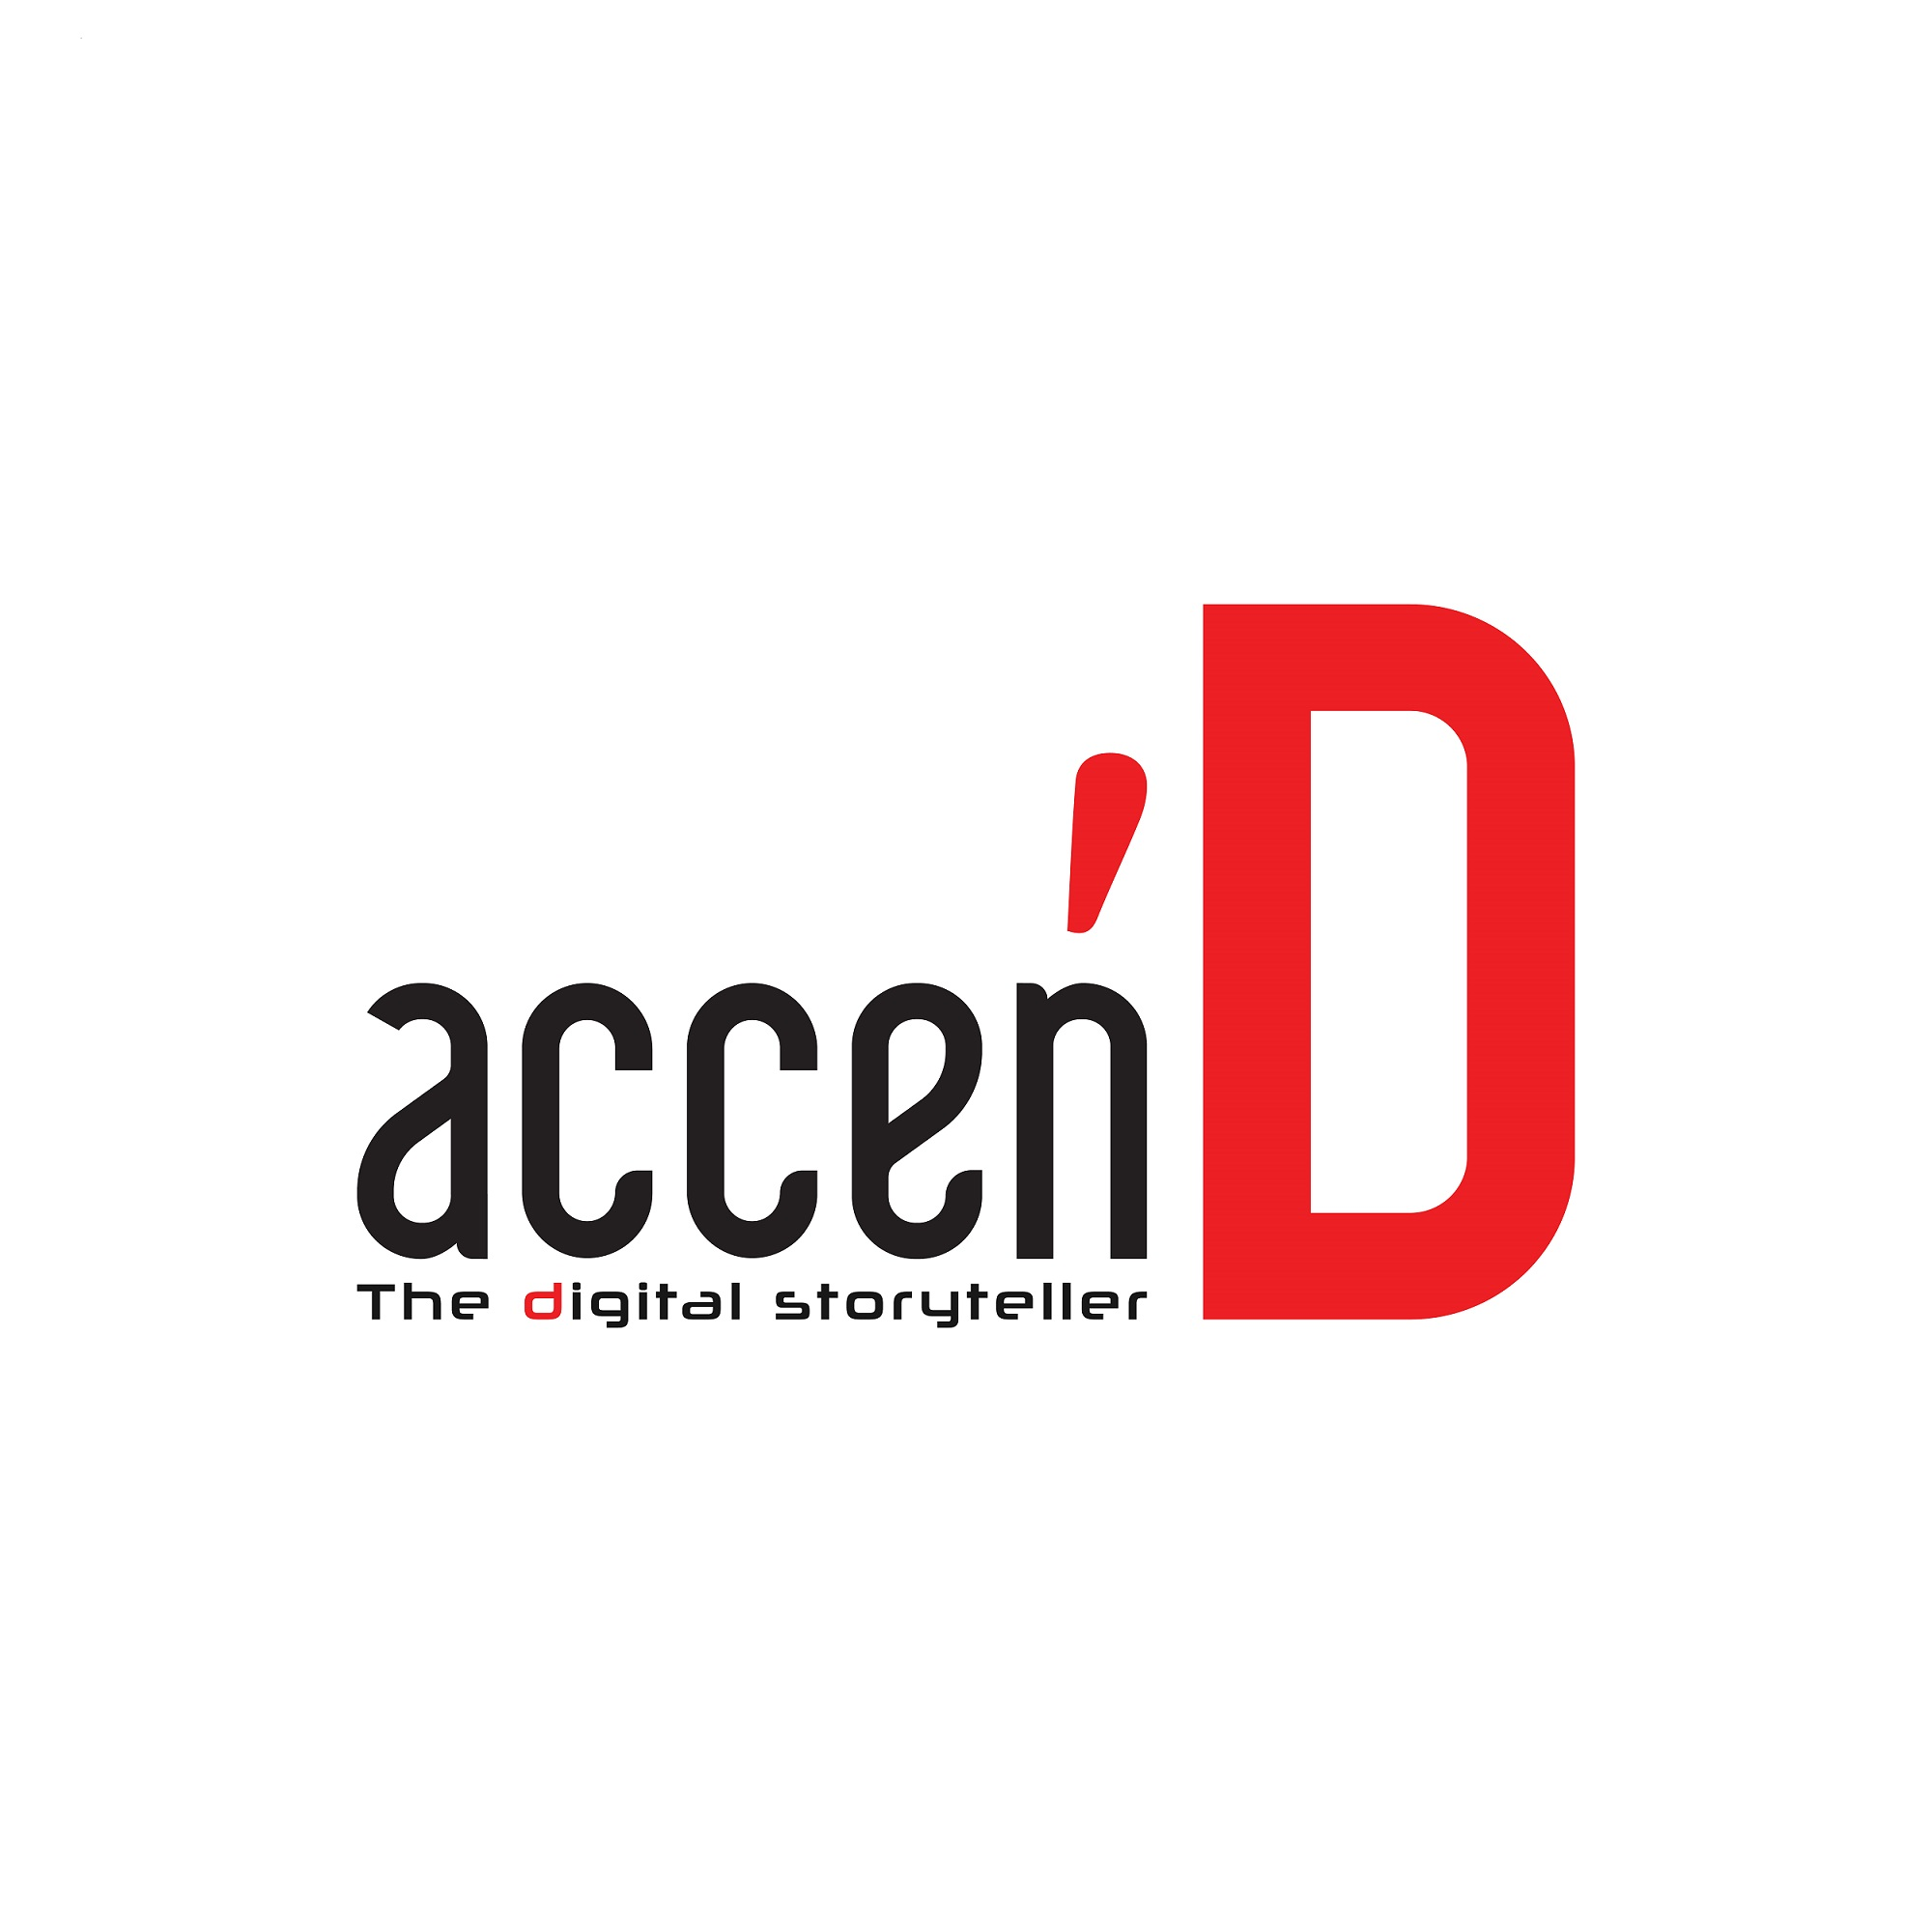 Accend Digital Solutions